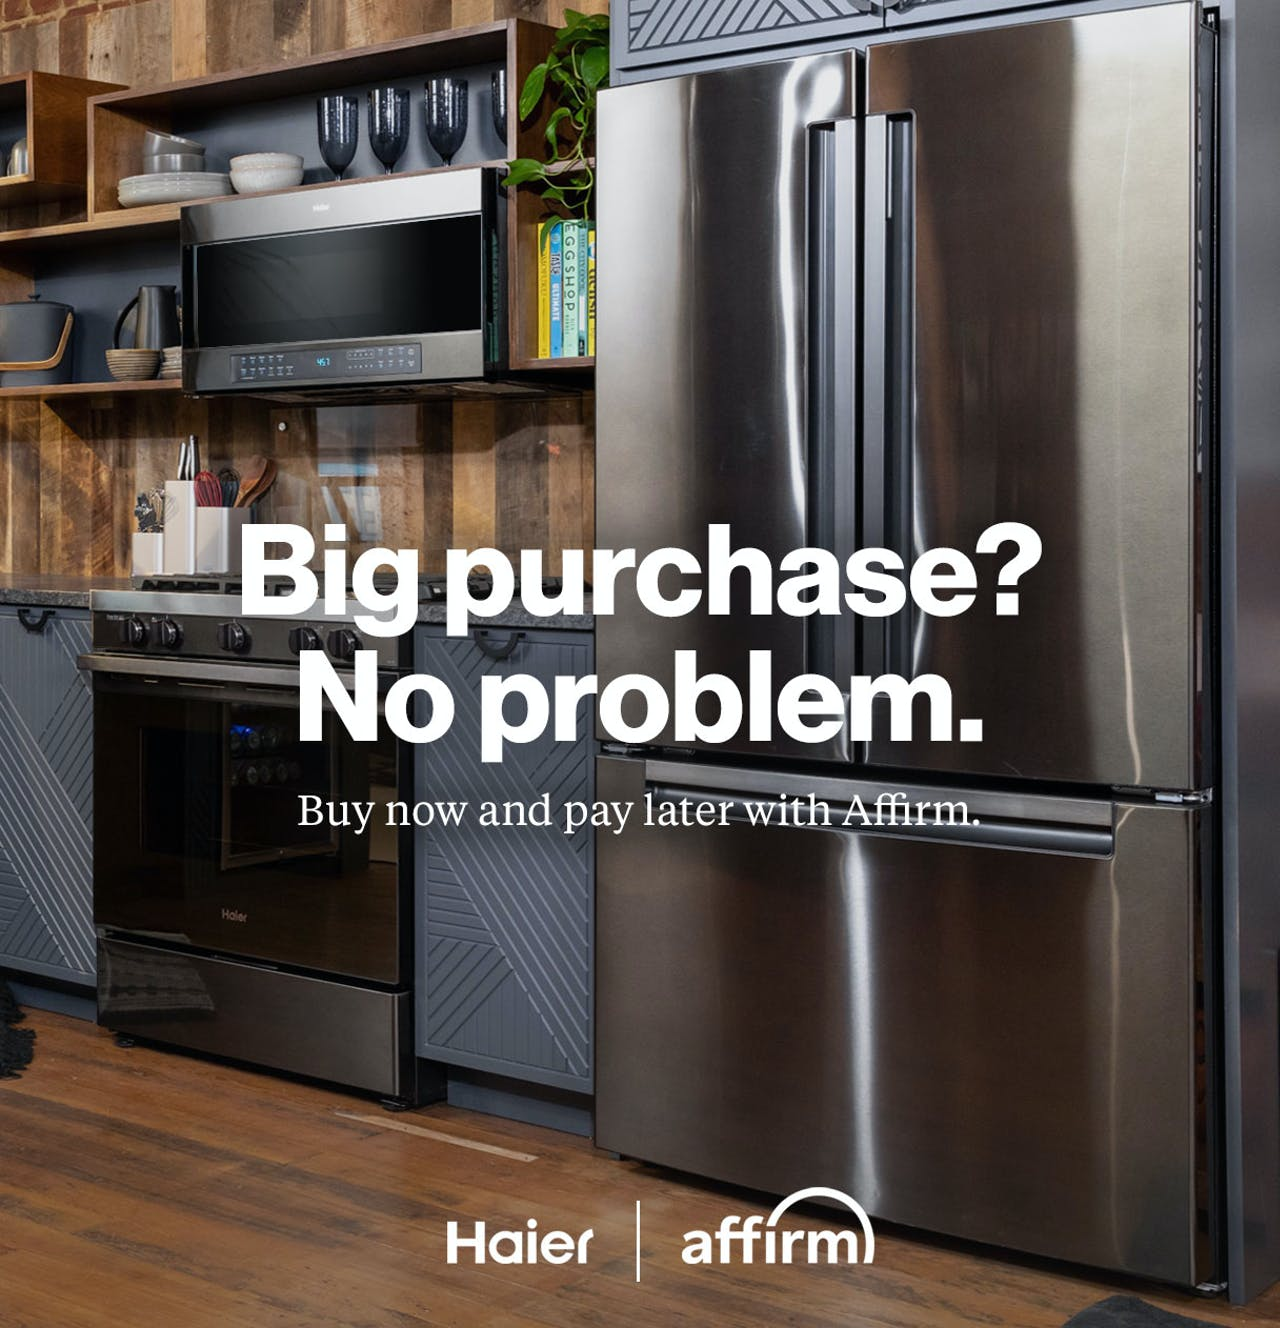 Big purchase? No problem. Buy now and pay later with Affirm